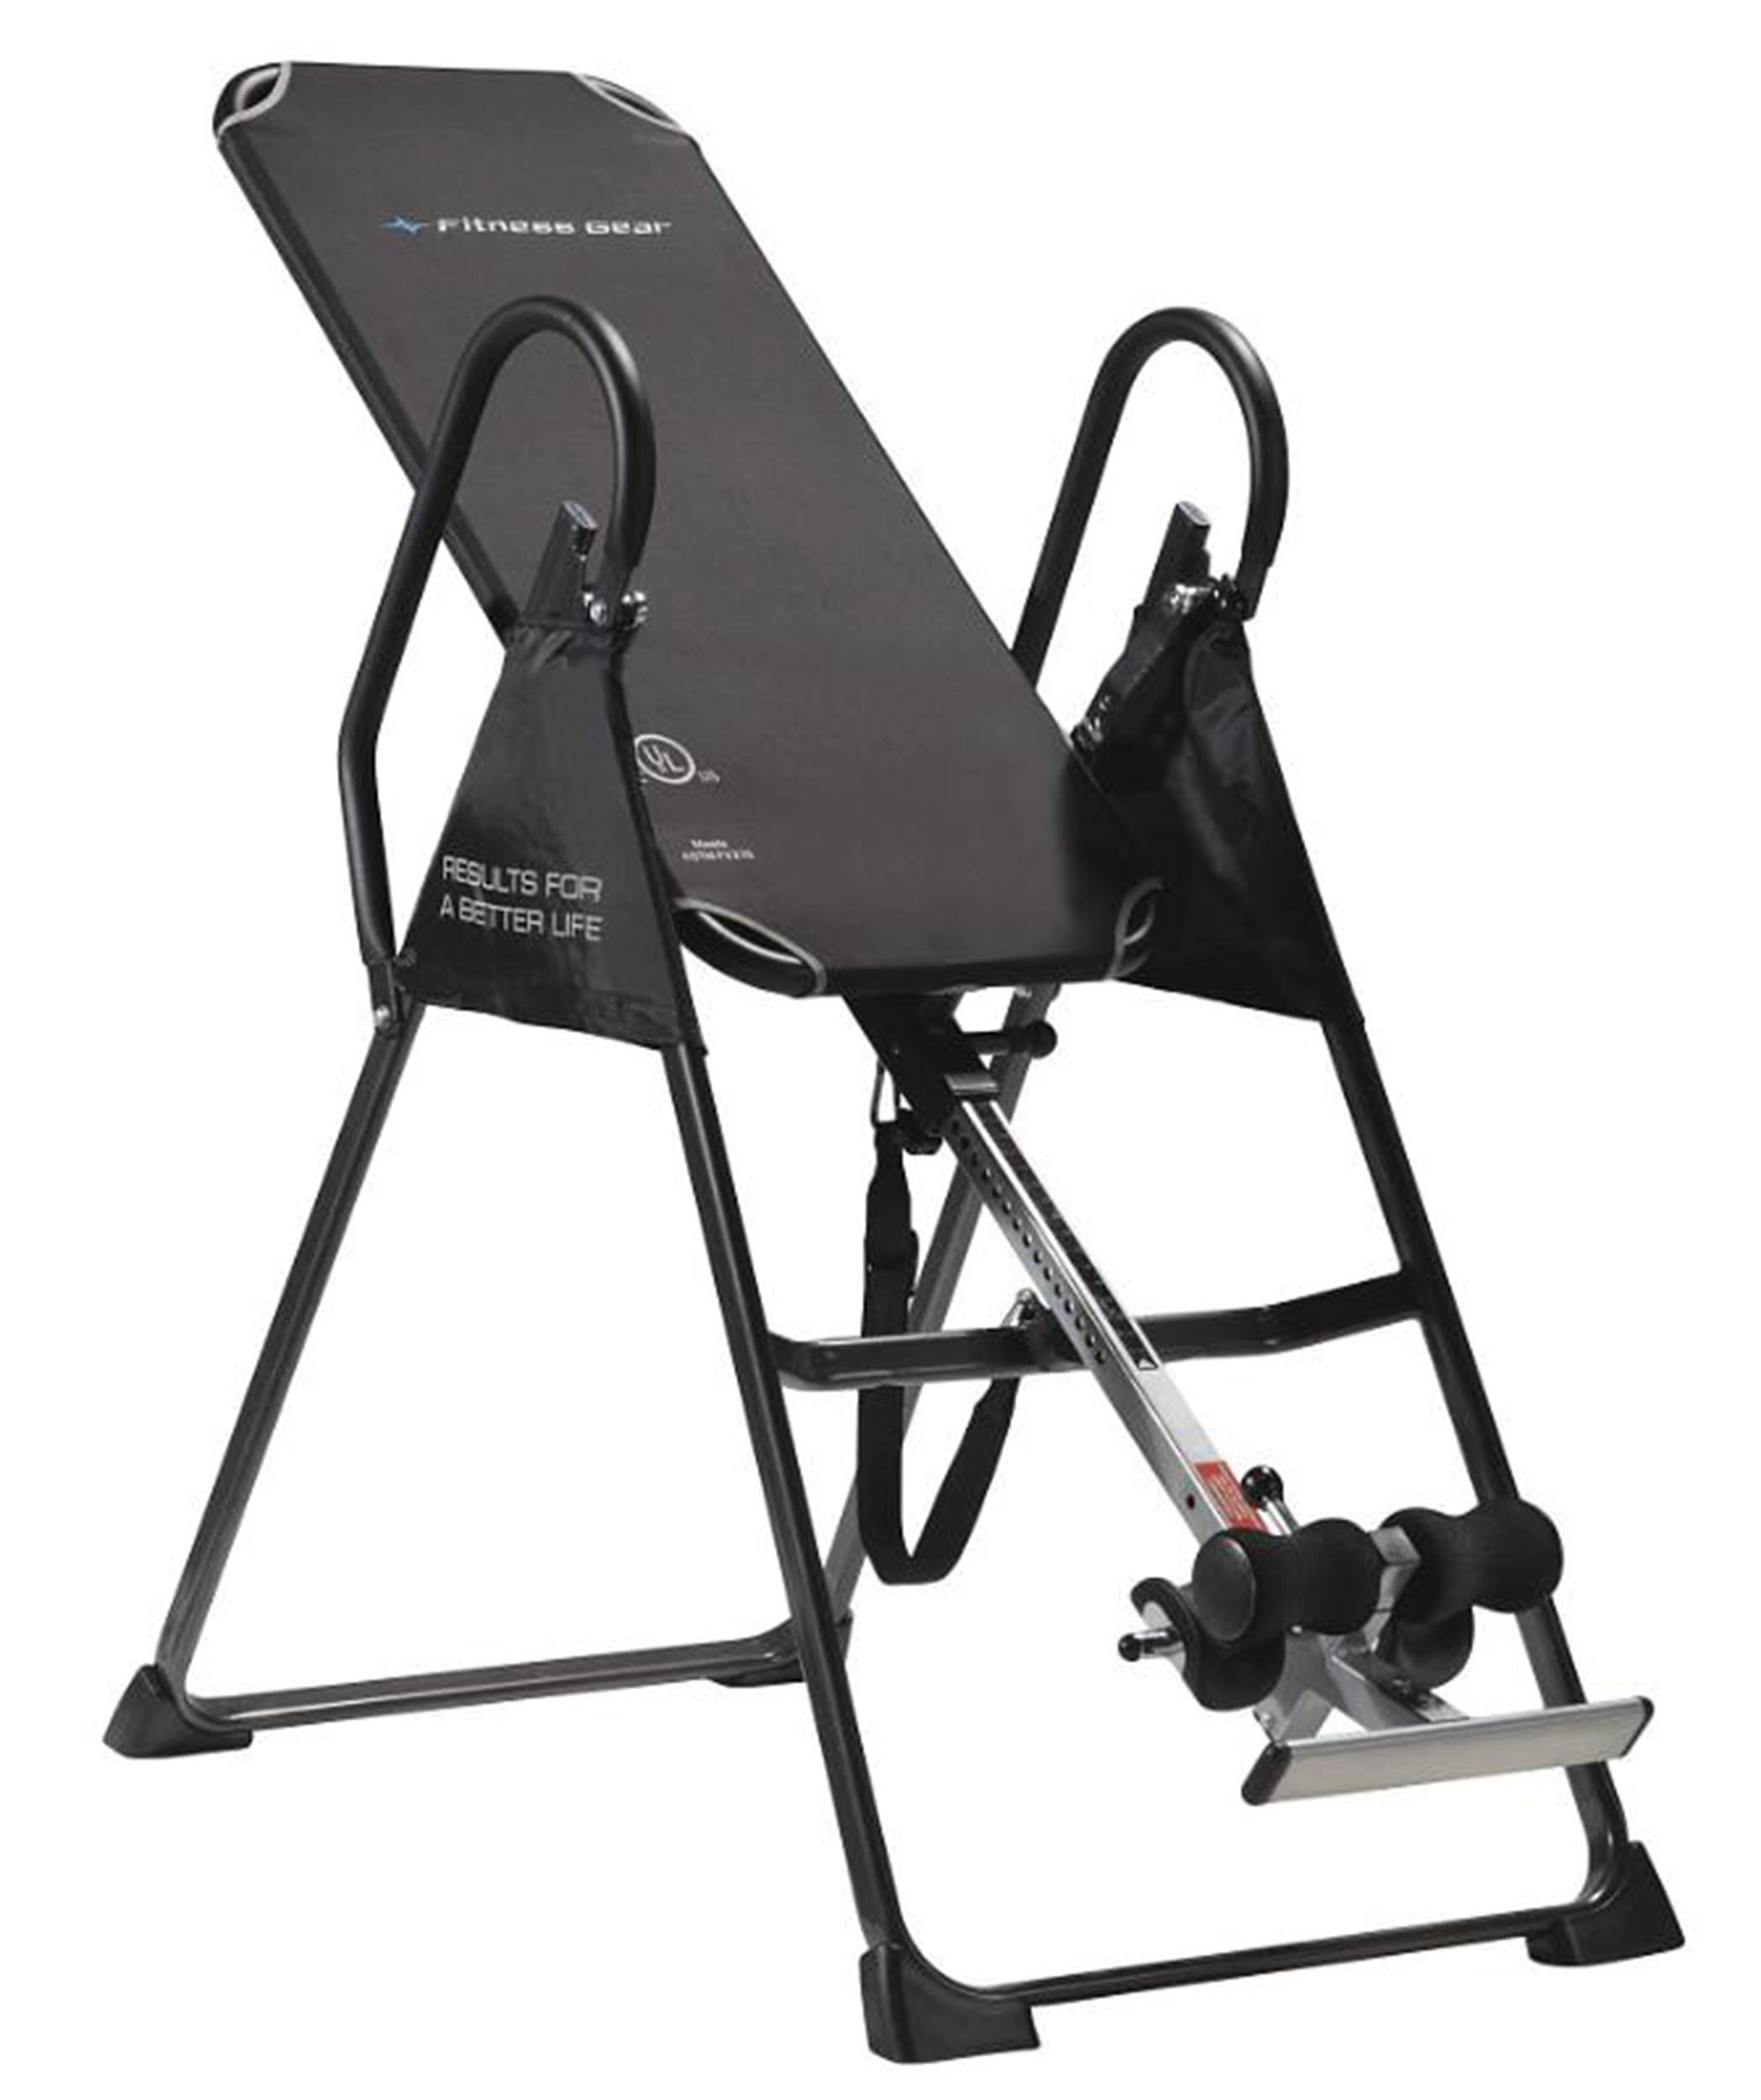 Dick 39 s sporting goods recalls inversion tables after falls for Table inversion